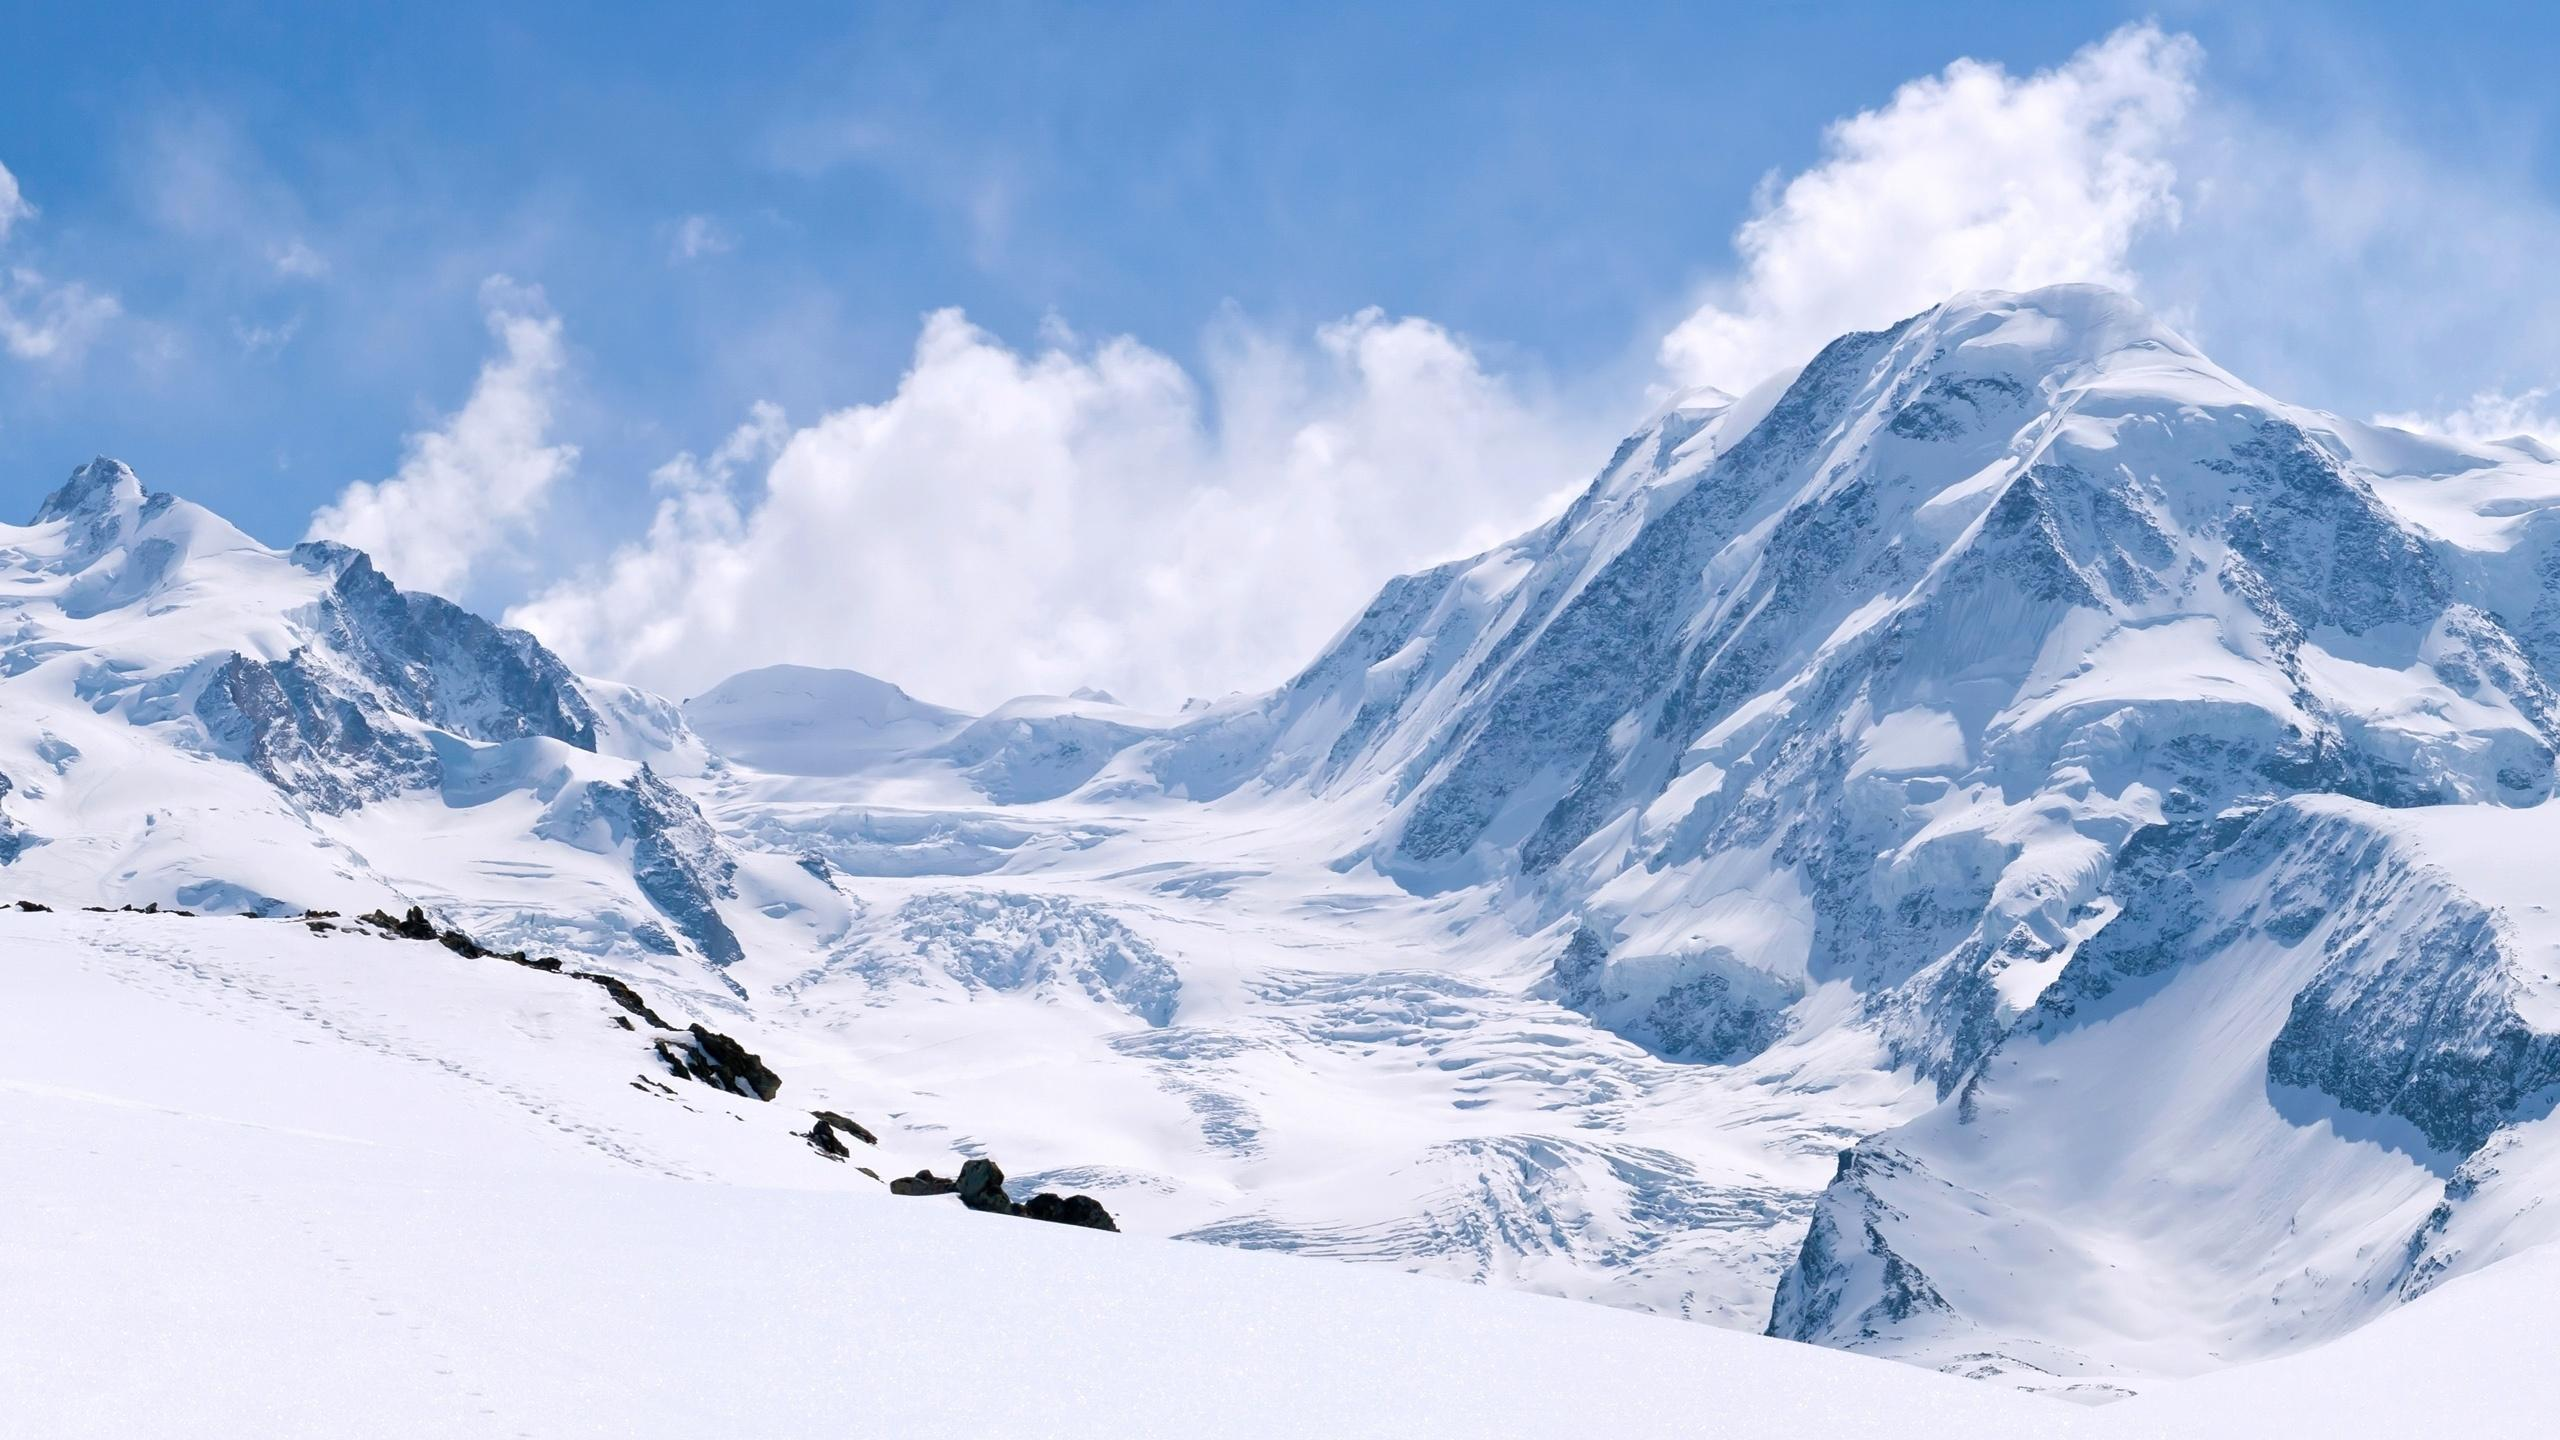 Winter Mountains Images